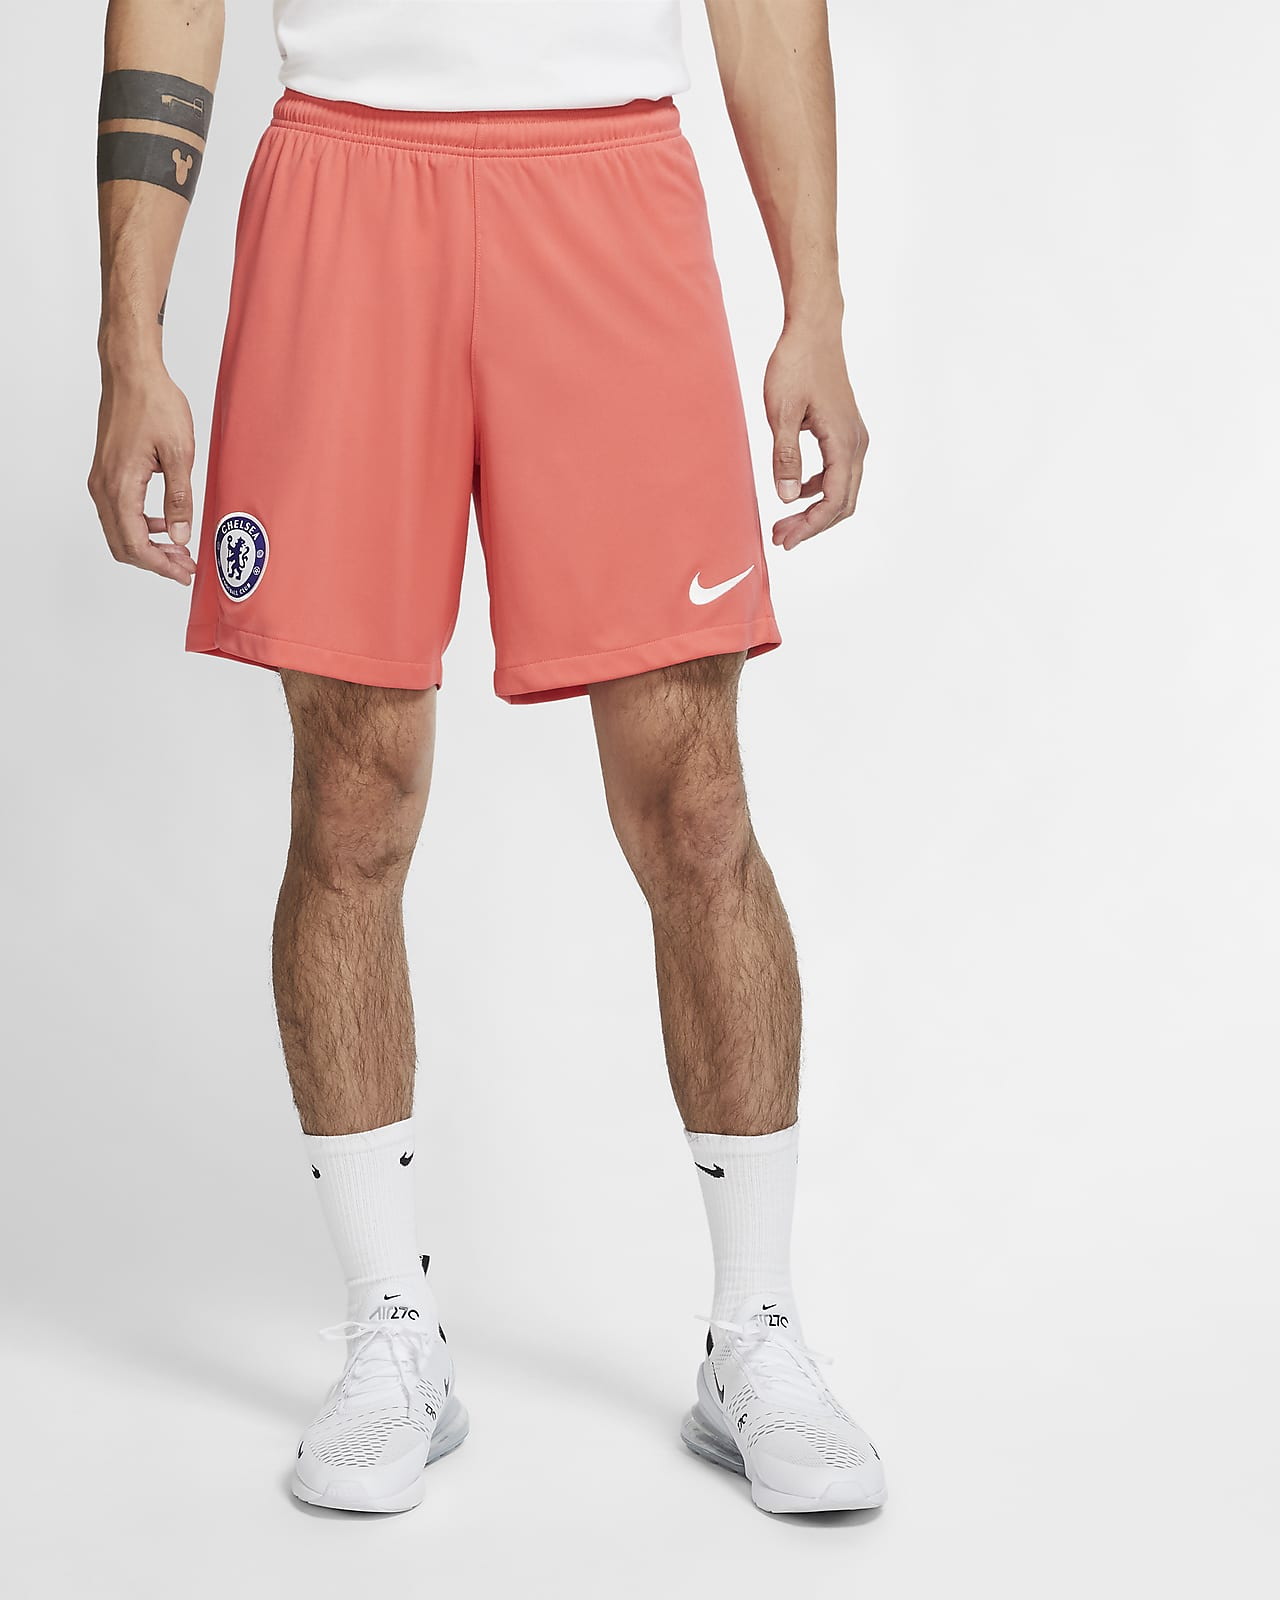 Chelsea F.C. 2020/21 Stadium Third Men's Football Shorts